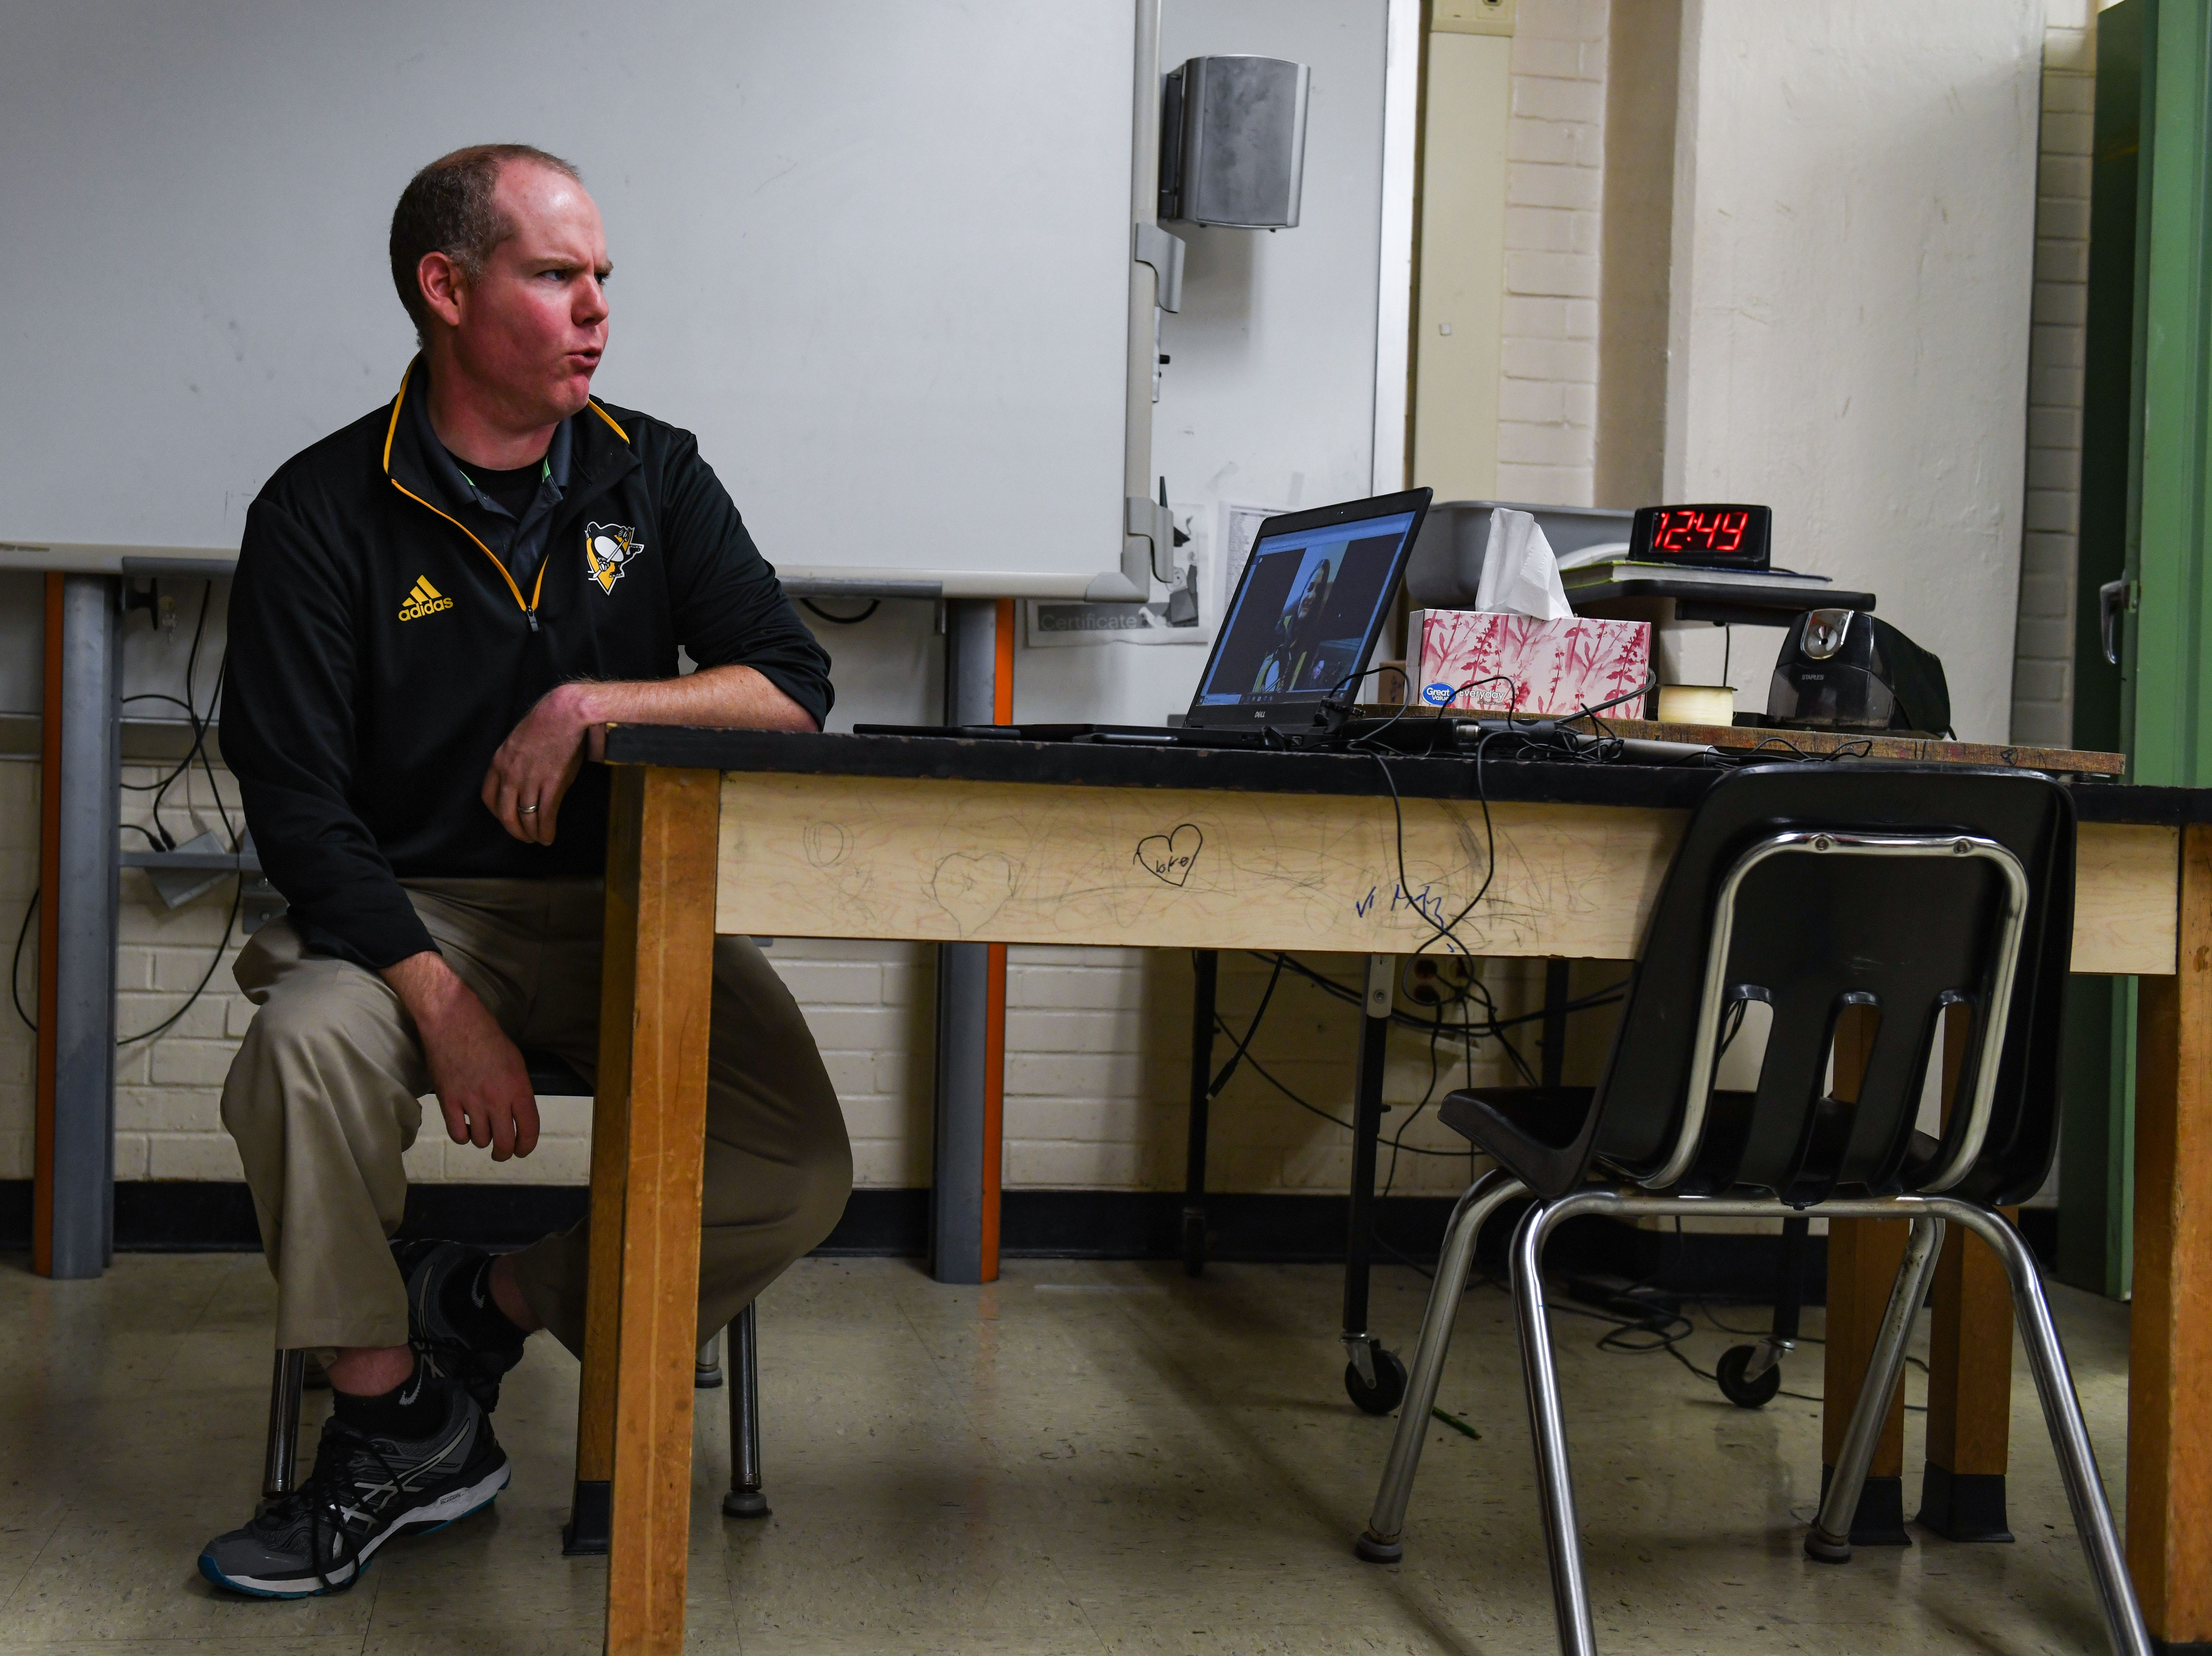 Wicomico Middle School teacher Jeff Lynd talks Kelly Sowatsky of Lancaster, PA talks over Facebook video messenger on Tuesday, Nov 27, 2018. Lynd donated a kidney to the fellow Pittsburgh Penguins fan less than a month ago.